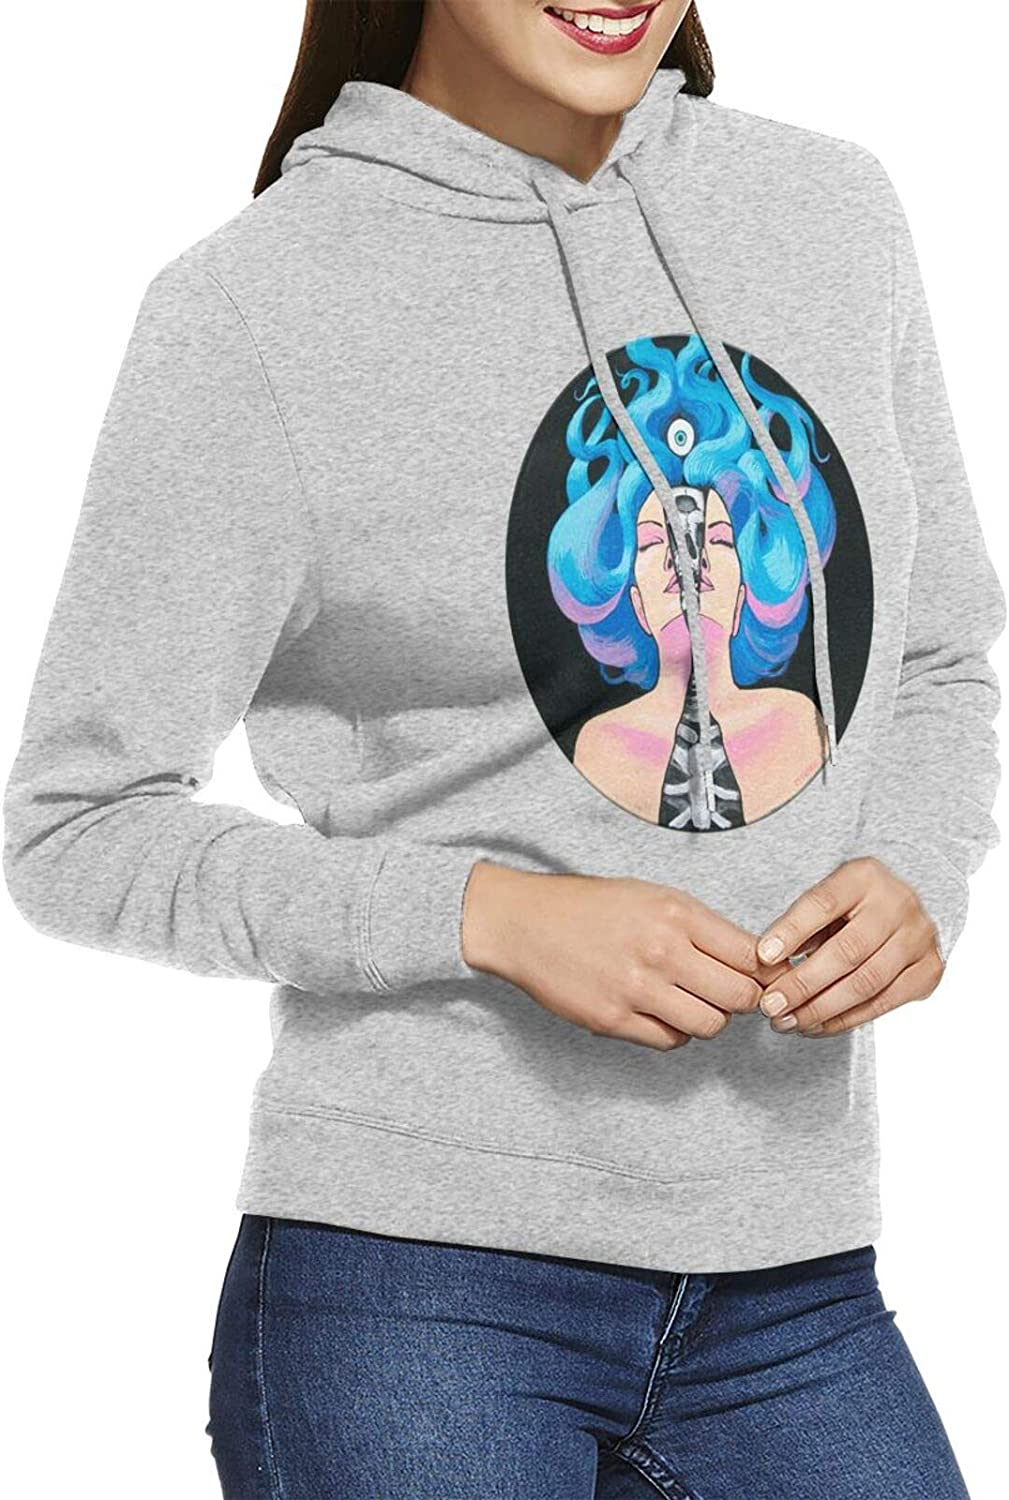 kexpCasual Fashion Comfortable Max 47% Max 61% OFF OFF Sweater Less Hooded Hood Pocket